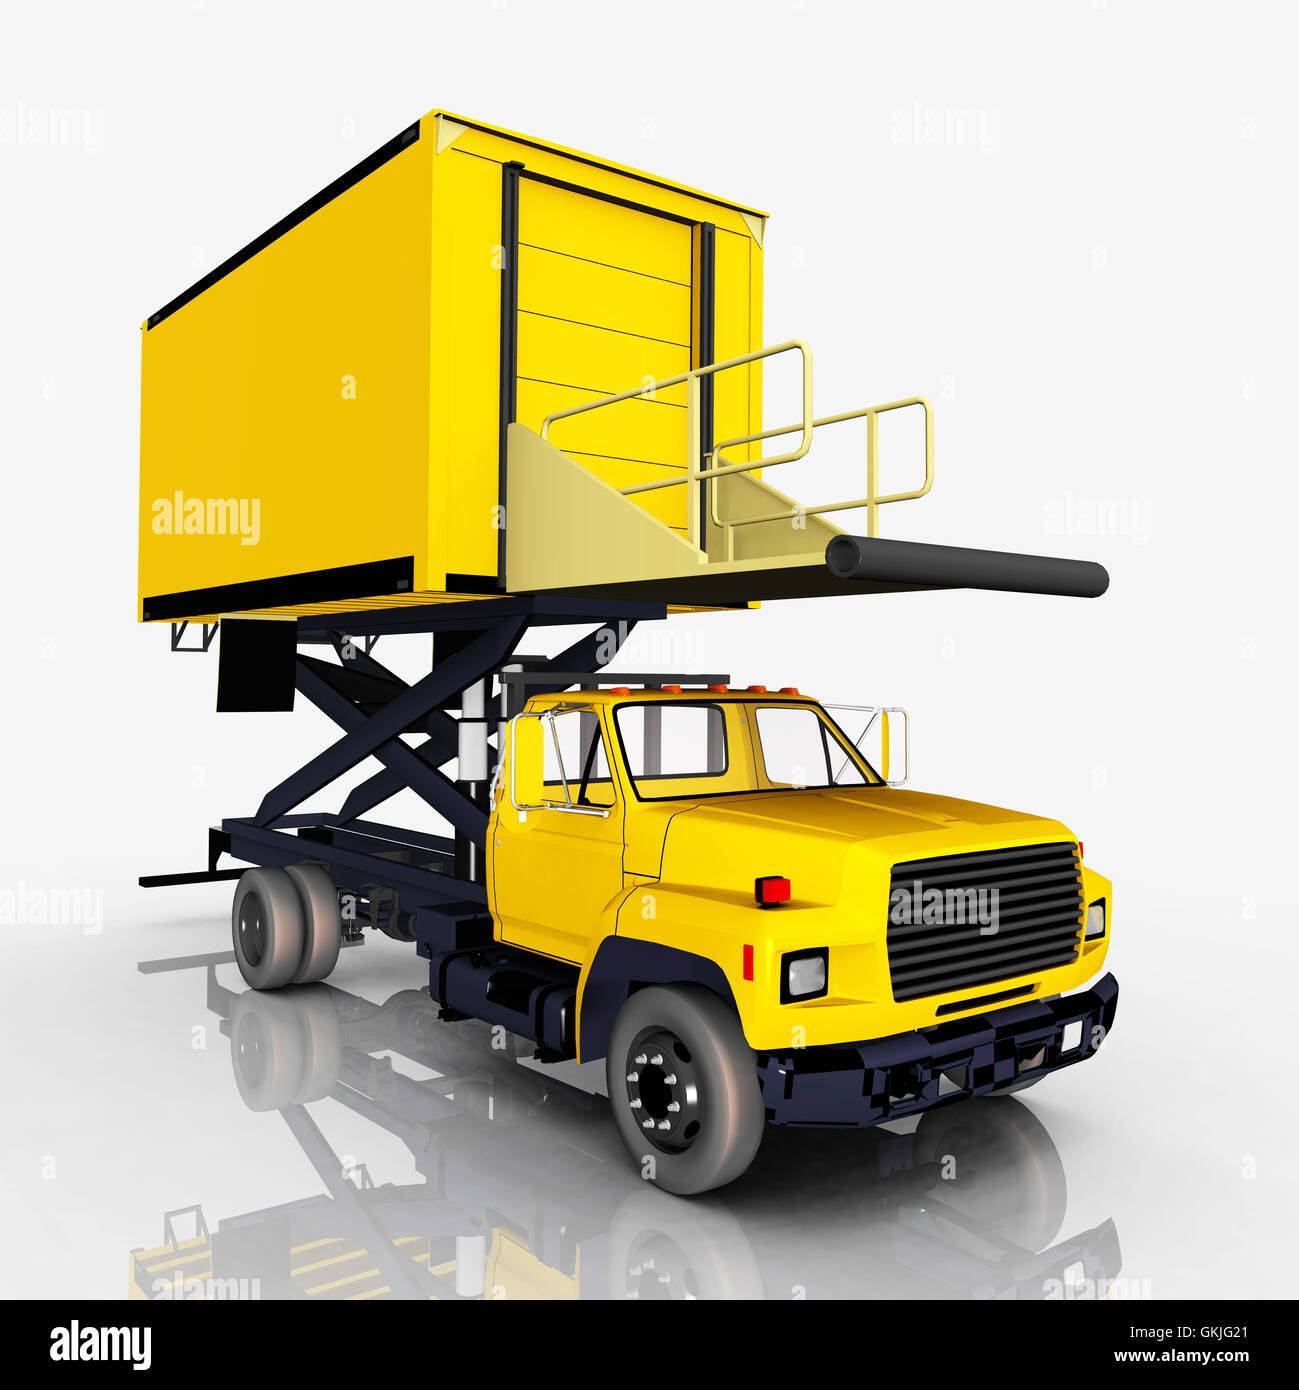 Airport Catering Truck Stock Photo Royalty Free Image 115348409